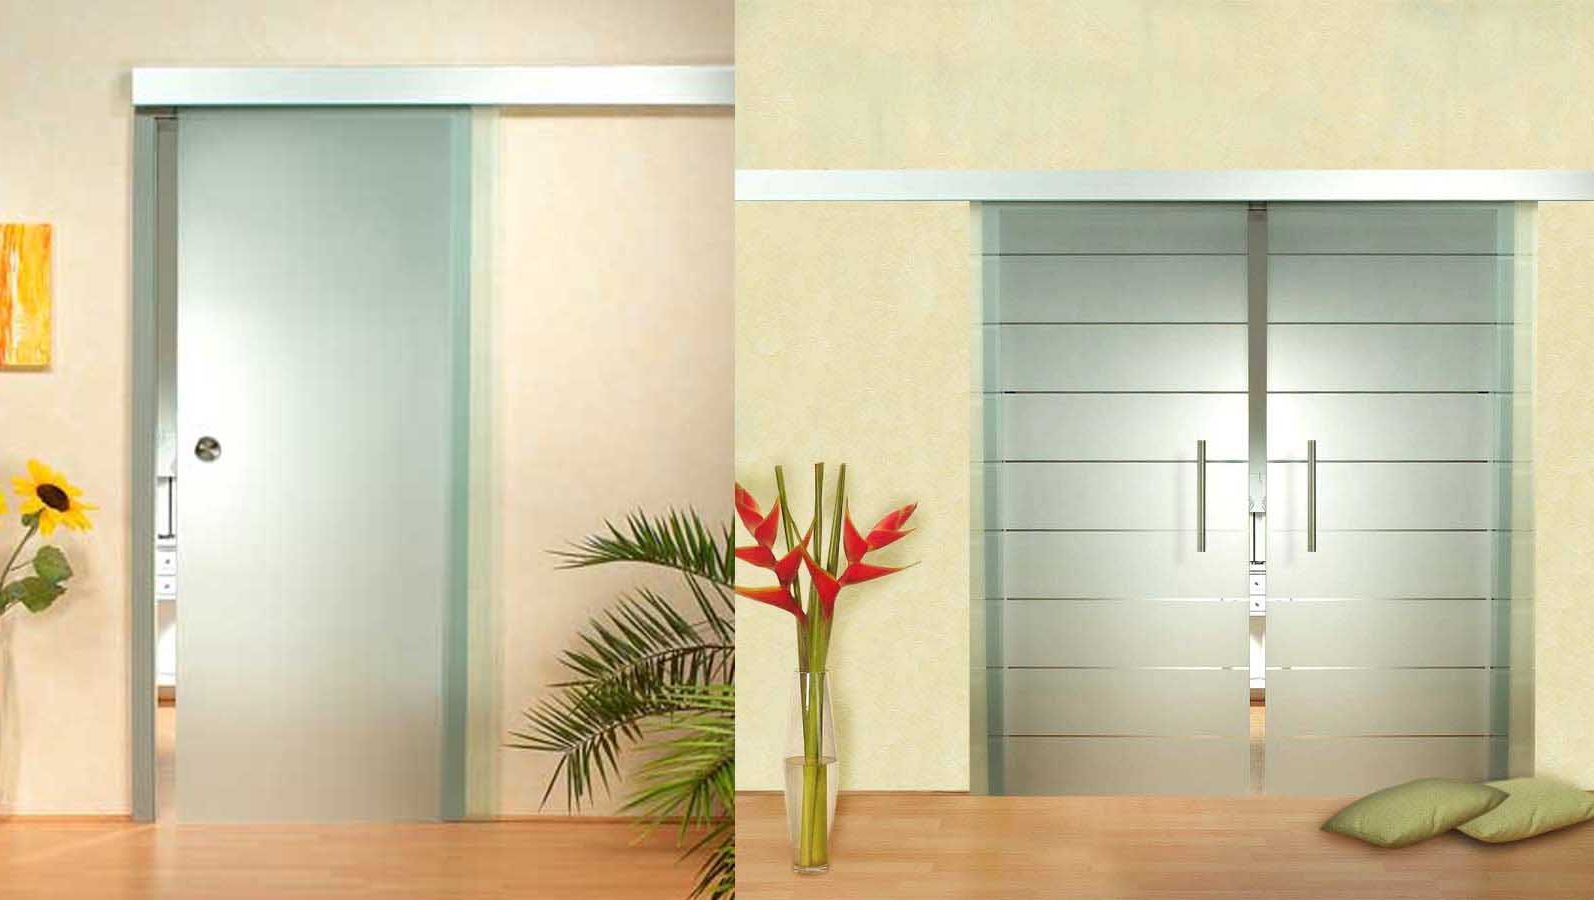 Glass Bathroom Doors Interior Bathroom Vintage Frosted Glass Bathroom Doorfrosted Door Frosted: interior doors frosted glass